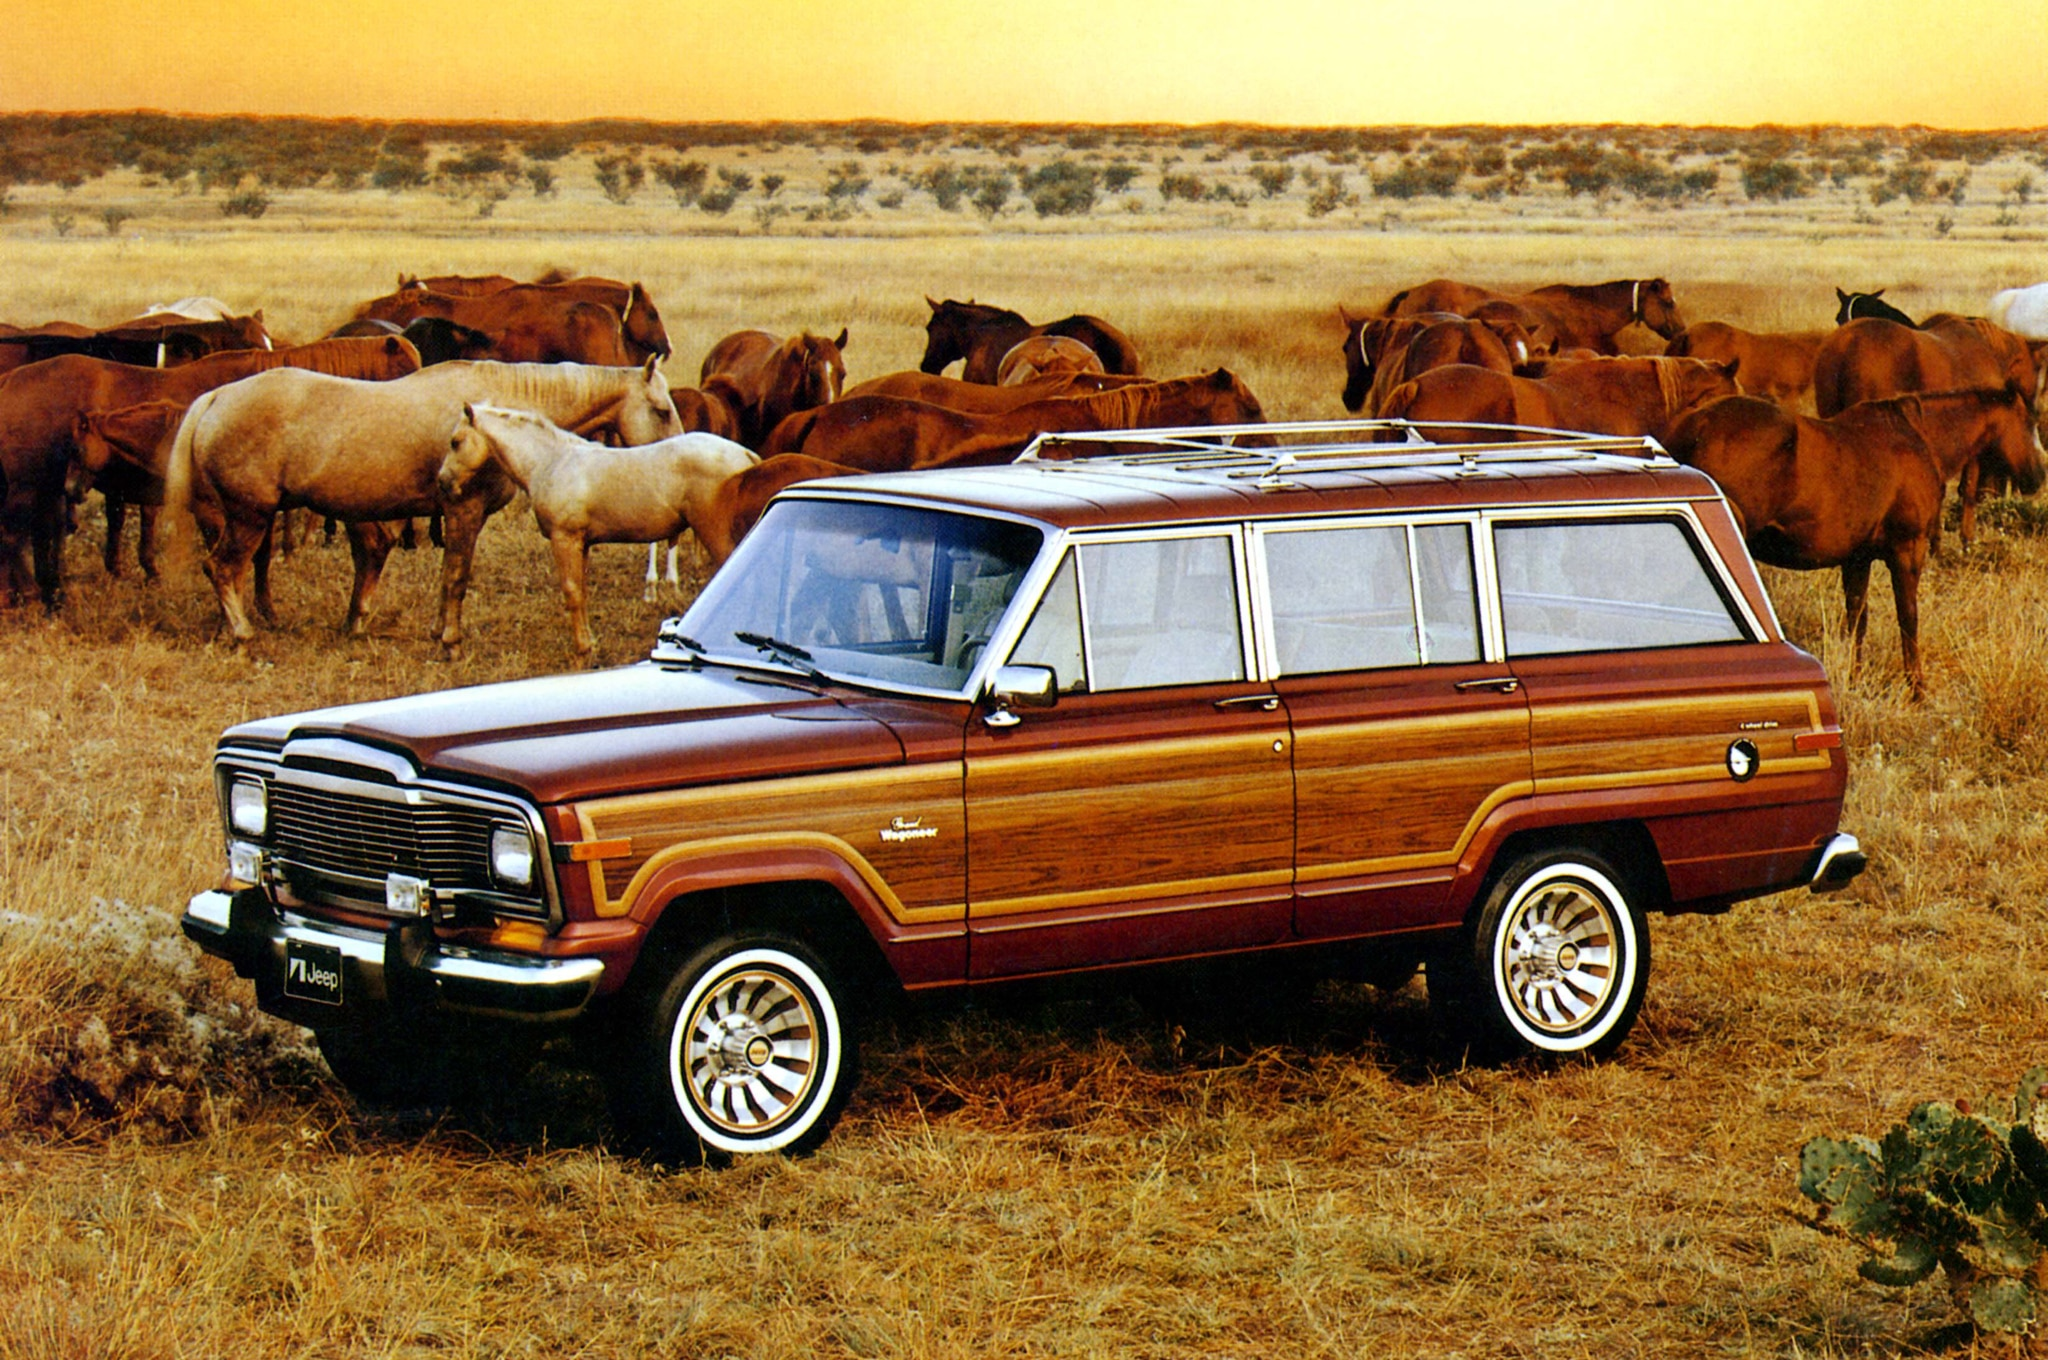 Report: Jeep Wagoneer and Grand Wagoneer Will Be Standalone SUVs